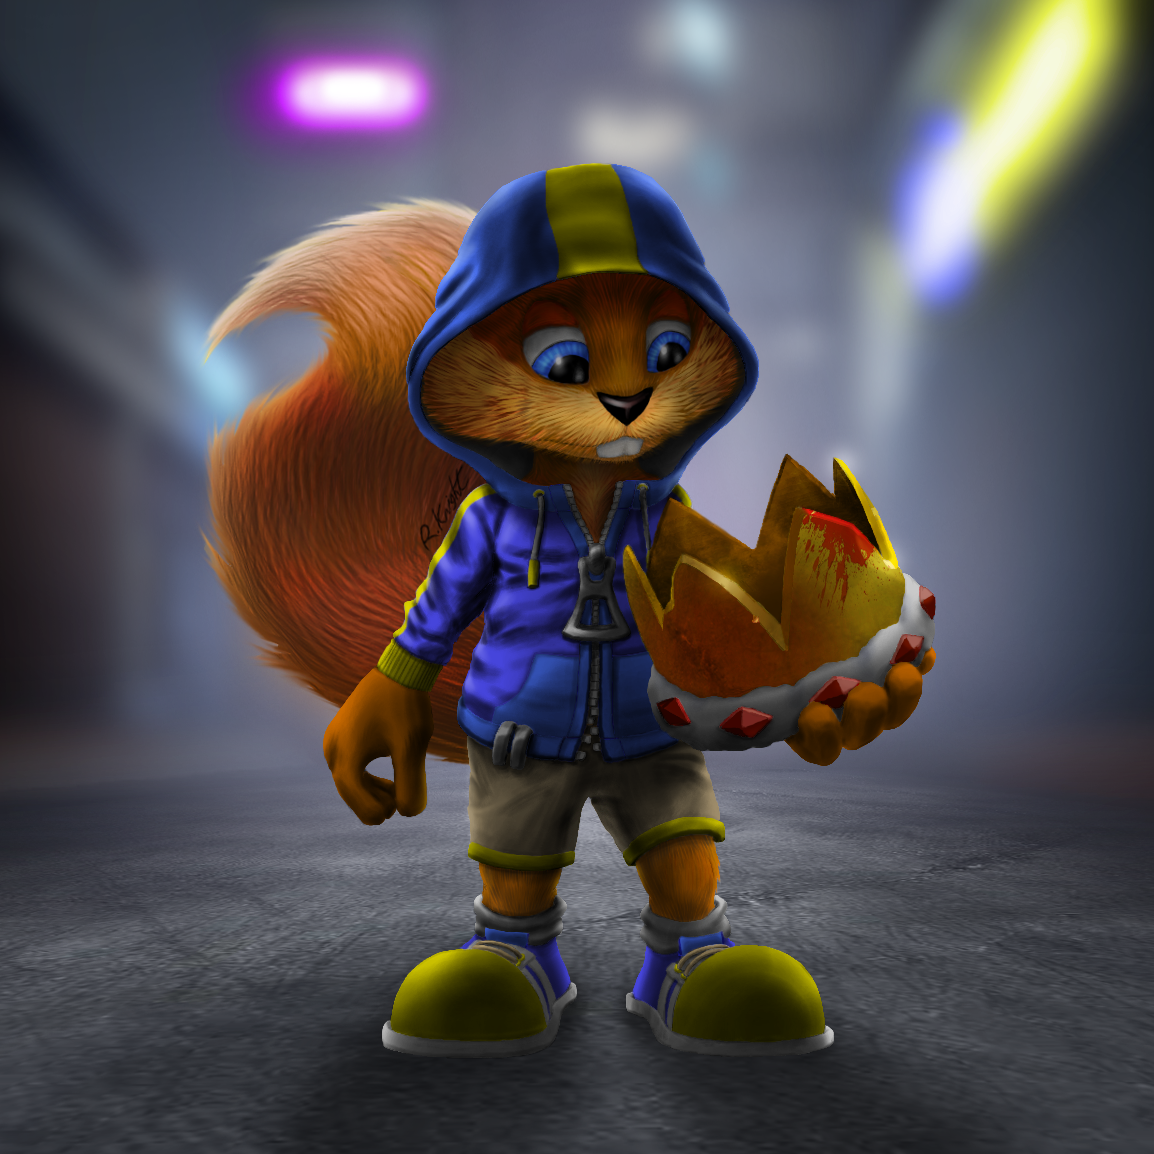 Conker's Other Bad Day